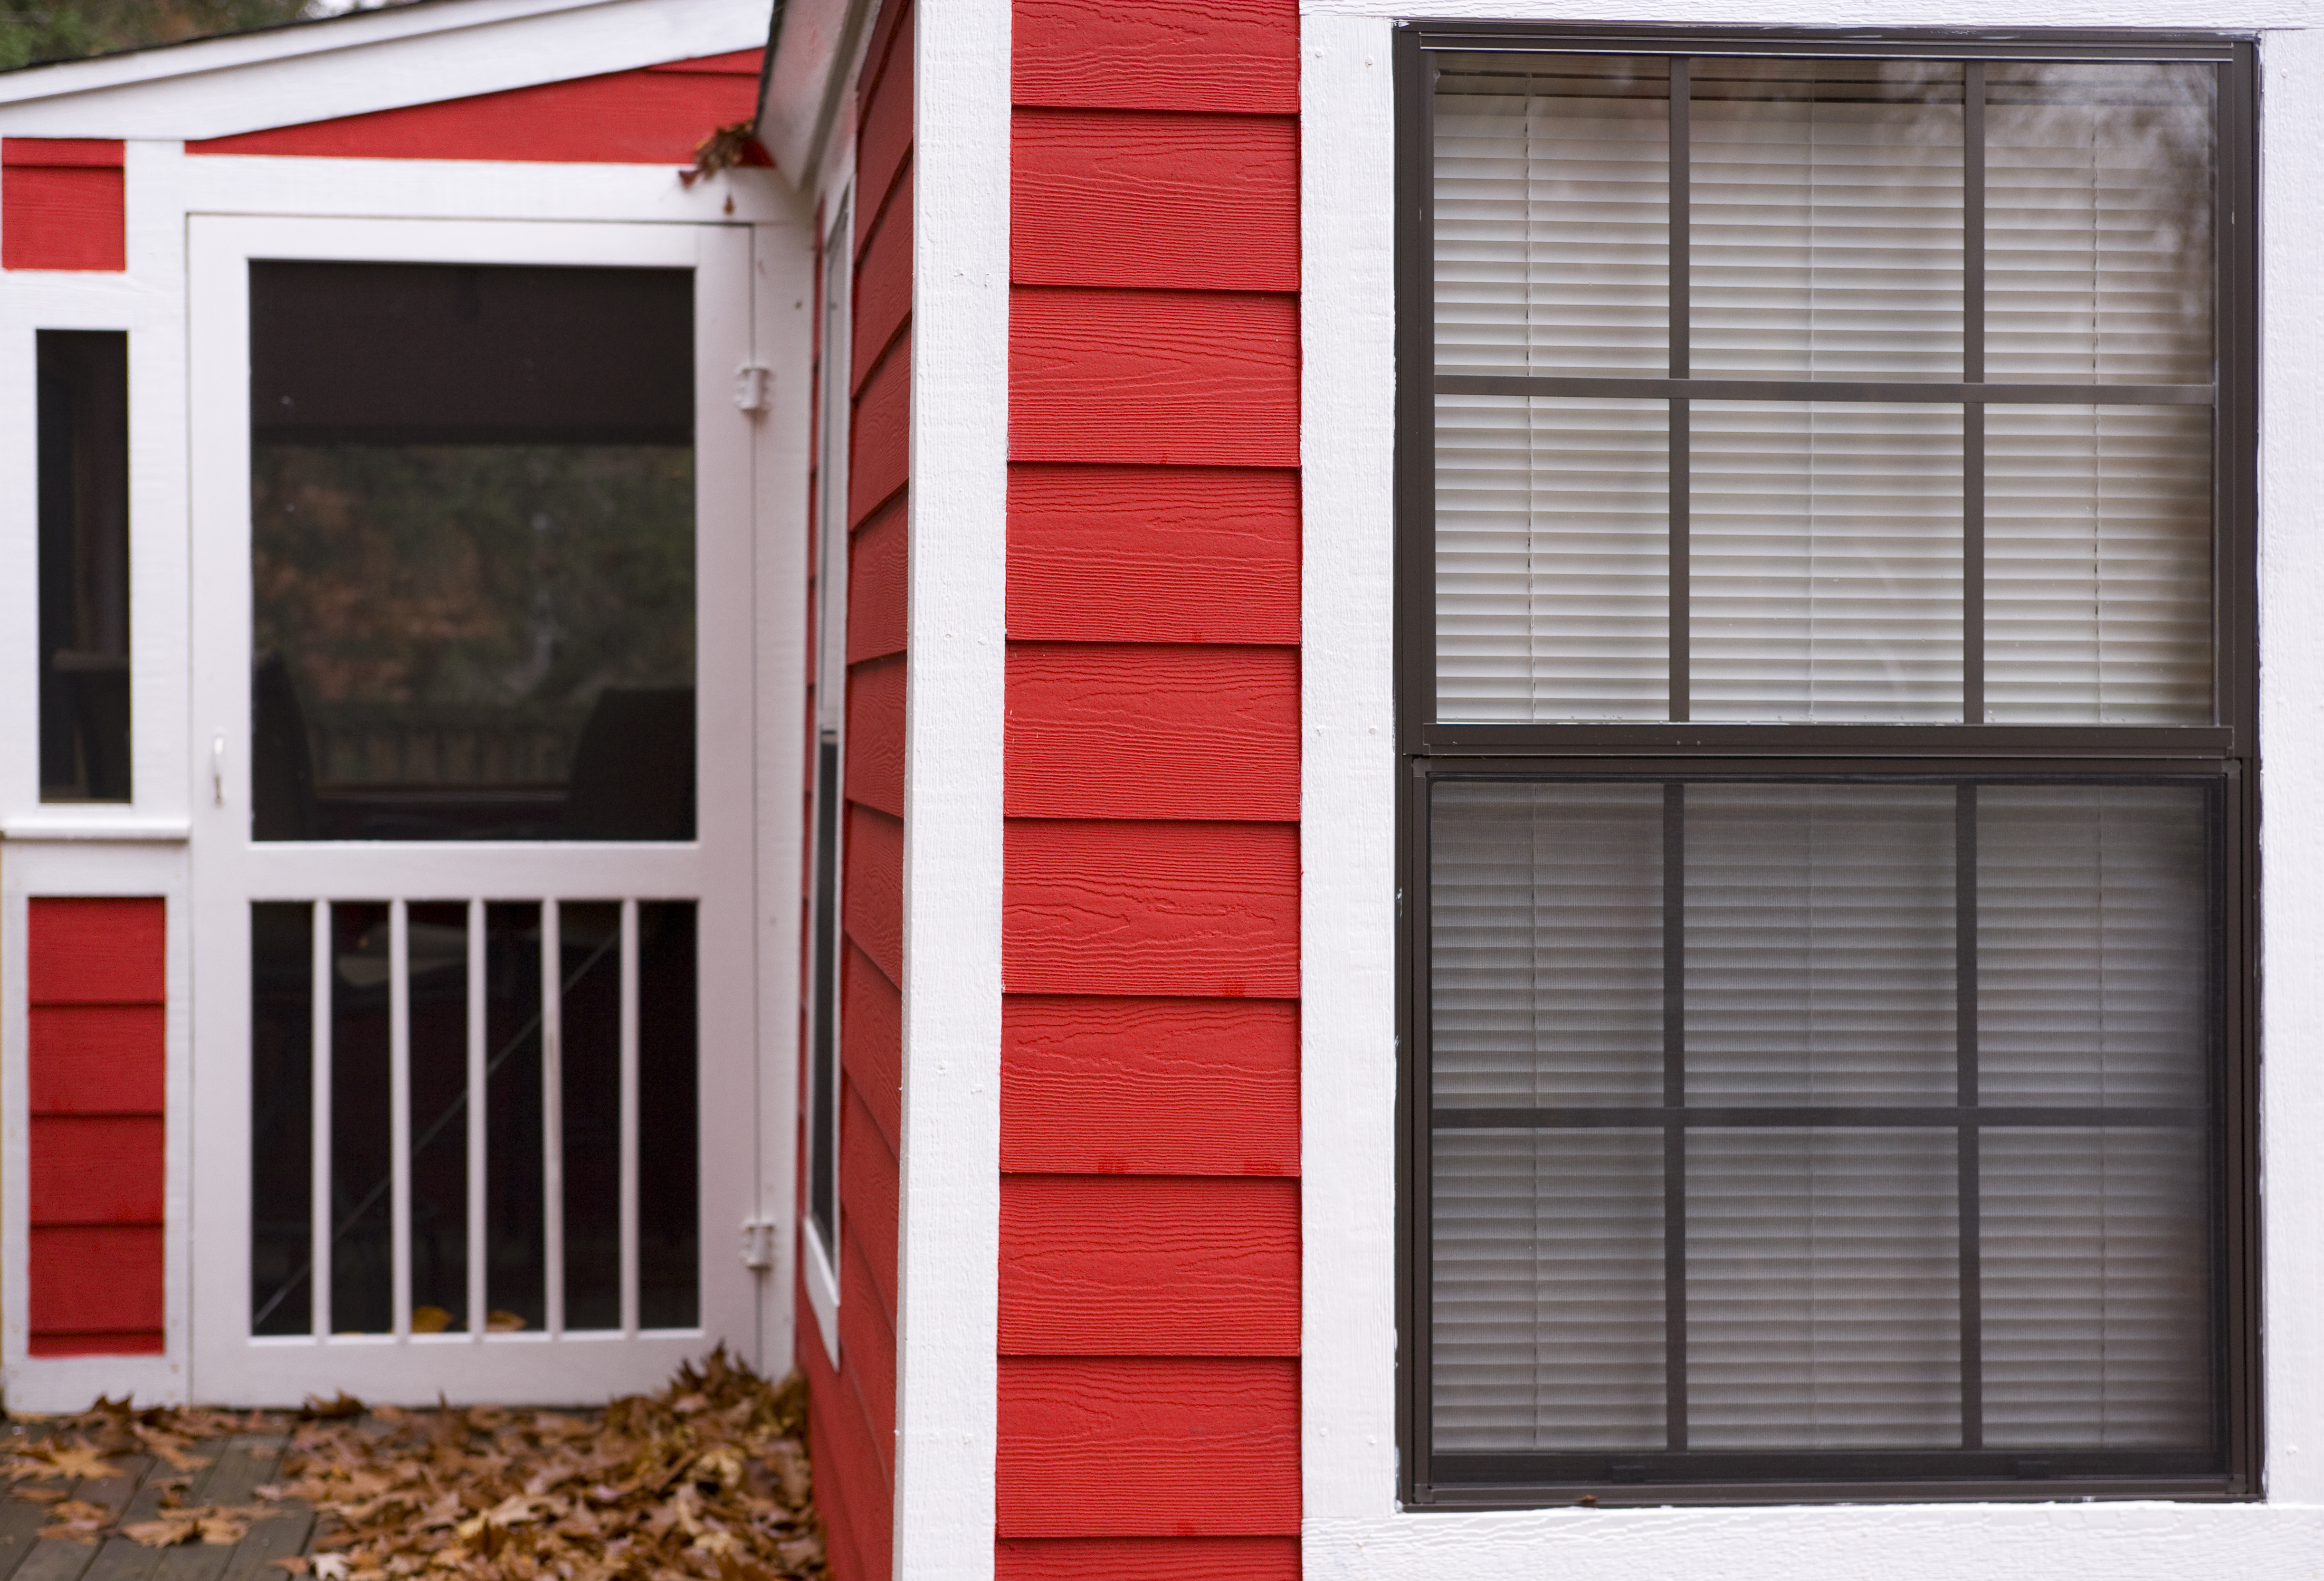 How to Fix a Storm Door That Won't Close | Hunker